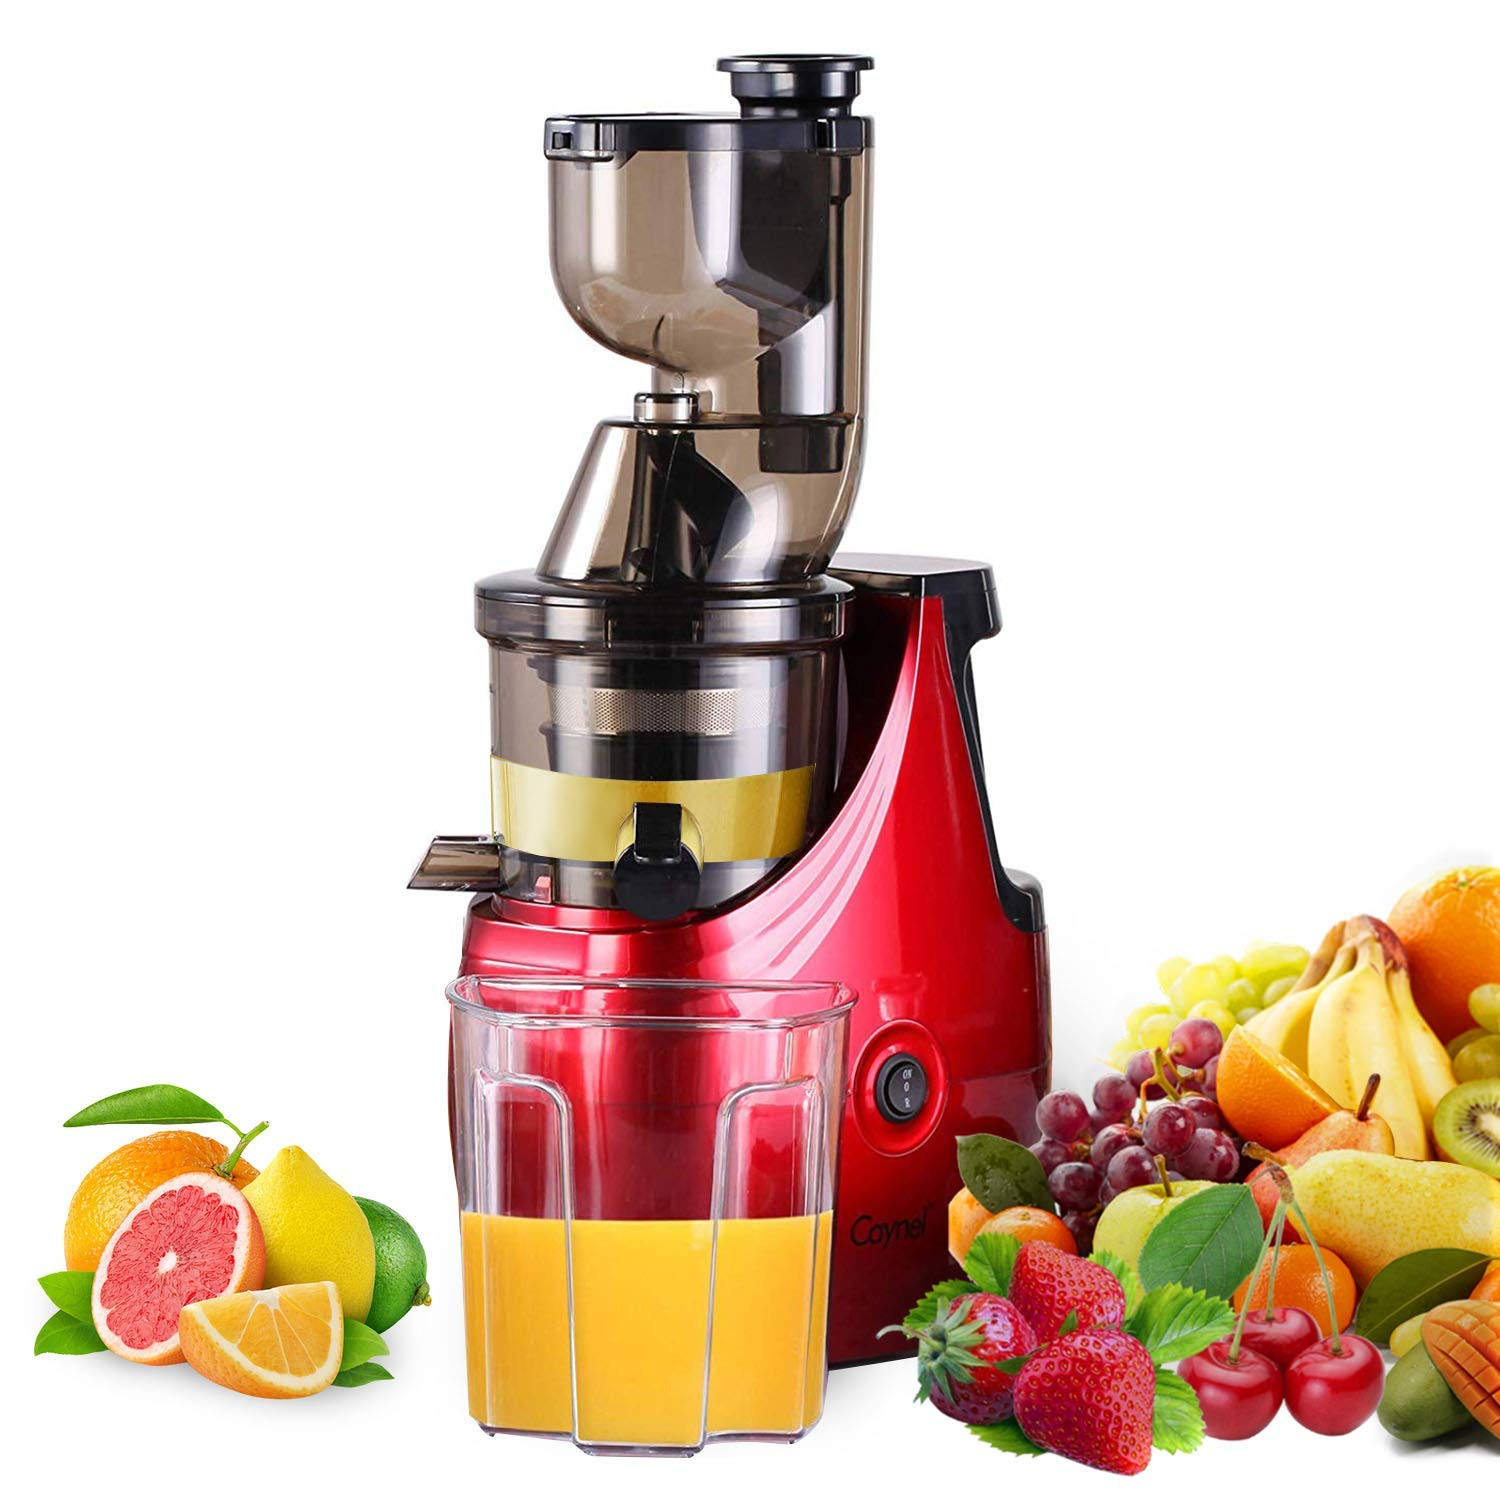 "Slow Masticating Juicer Caynel Cold Press Extractor with 3"" Wide Chute for Fruits, Vegetables and Herbs, Quiet Durable Motor with Reverse Function, Smoothie Strainer Included, High Yield Vertical Juicer Easy Cleaning , BPA Free, Silver (Red)"